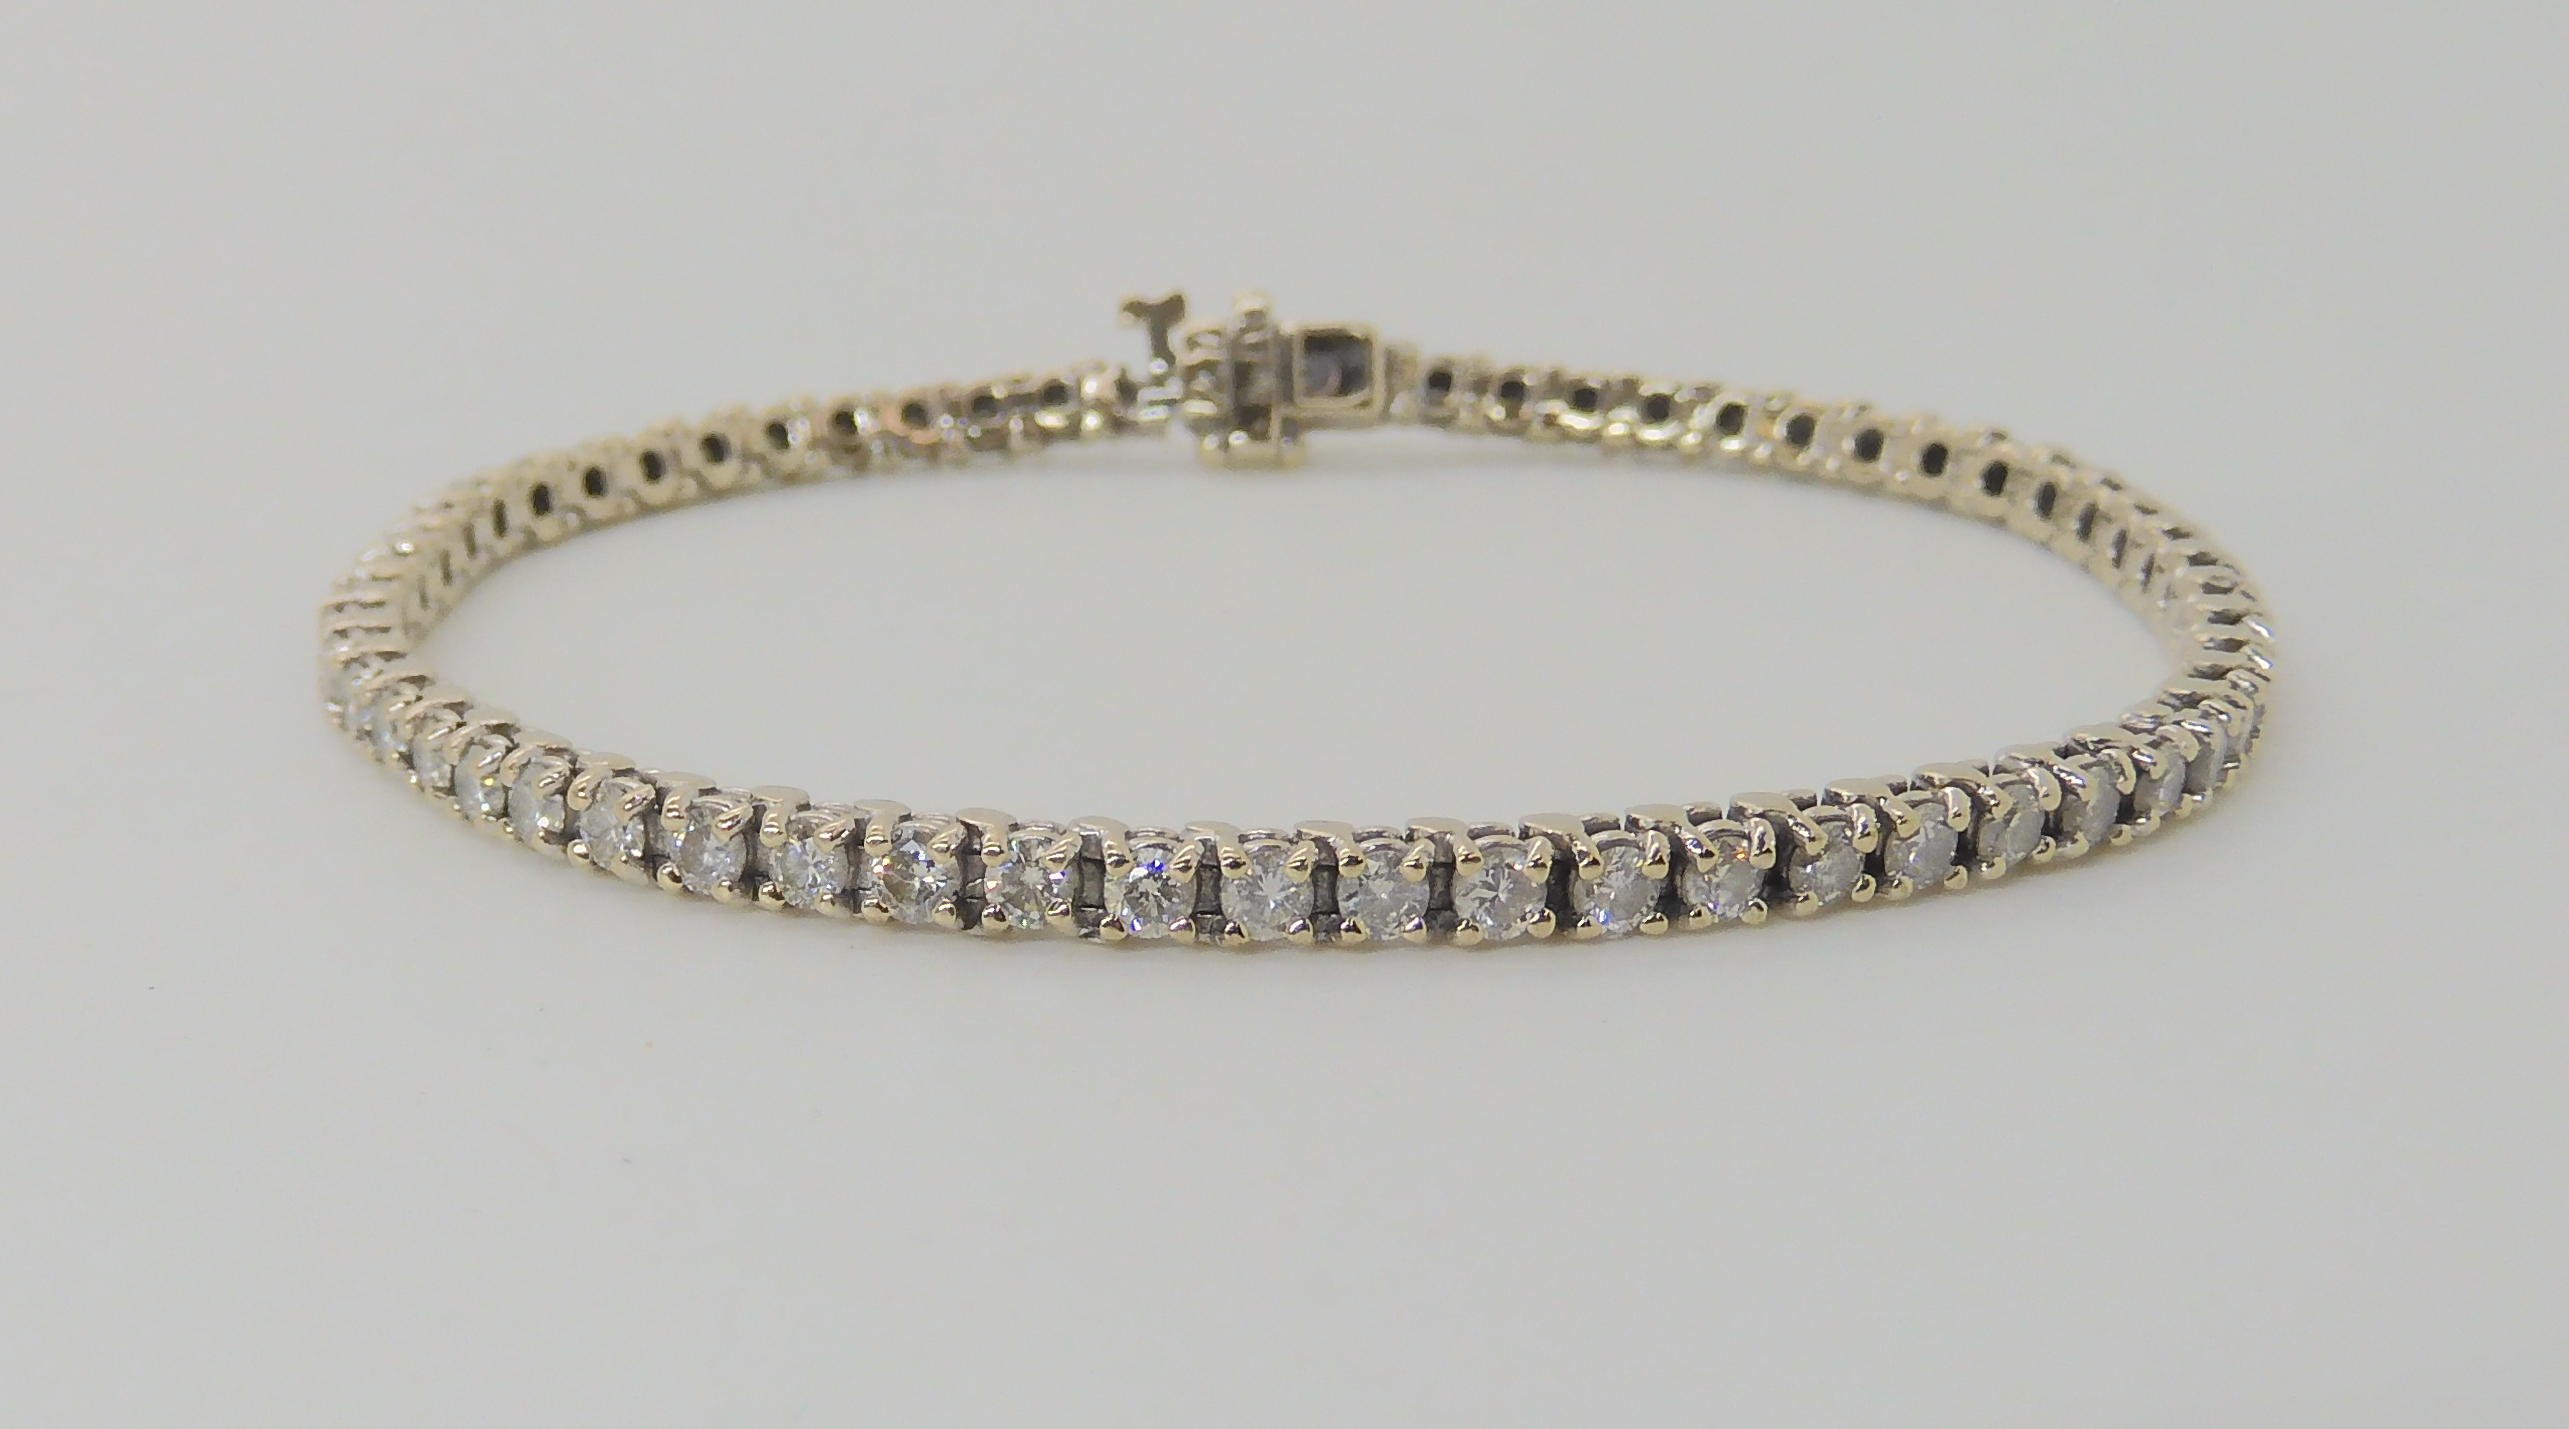 AN 18K WHITE GOLD DIAMOND LINE BRACELET set with estimated approx 2.7cts of brilliant cut - Image 3 of 5